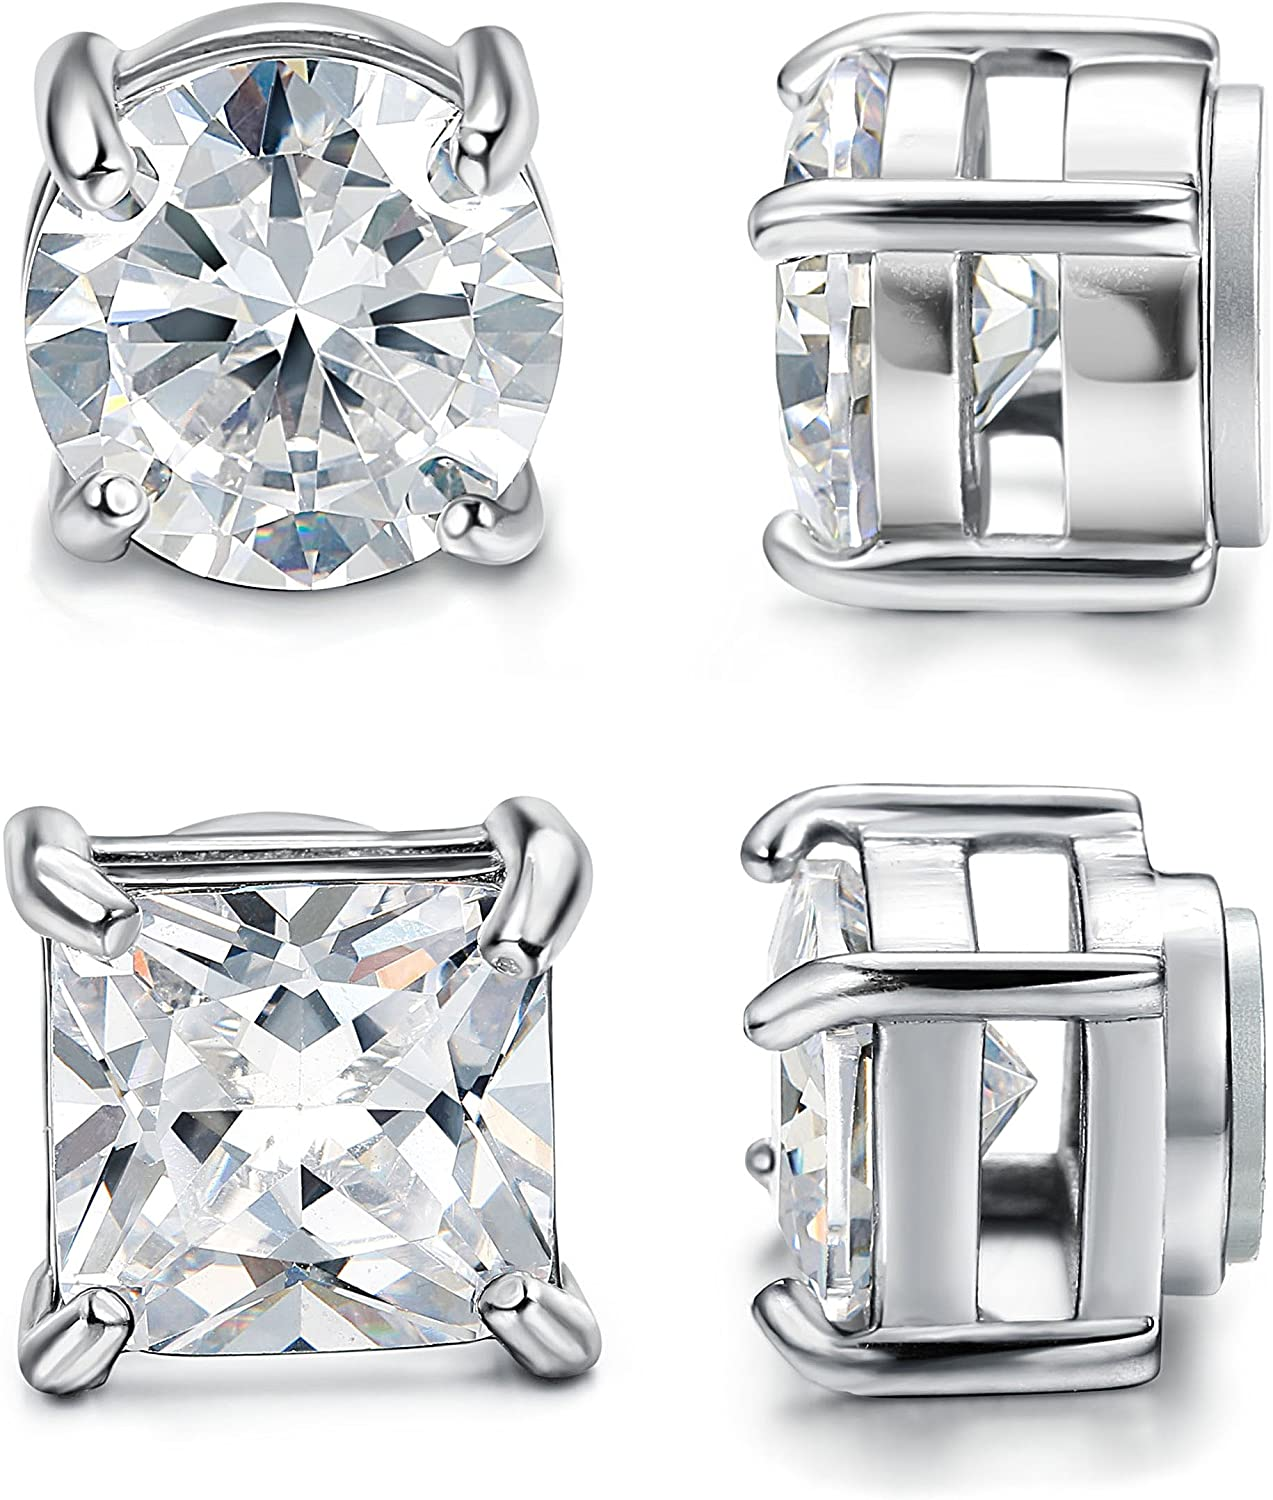 2-pair Magnetic Cz Diamond Stud Earrings (1-3 Carats) - Unisex @ Sons of Odin™ - Men's Jewelry on